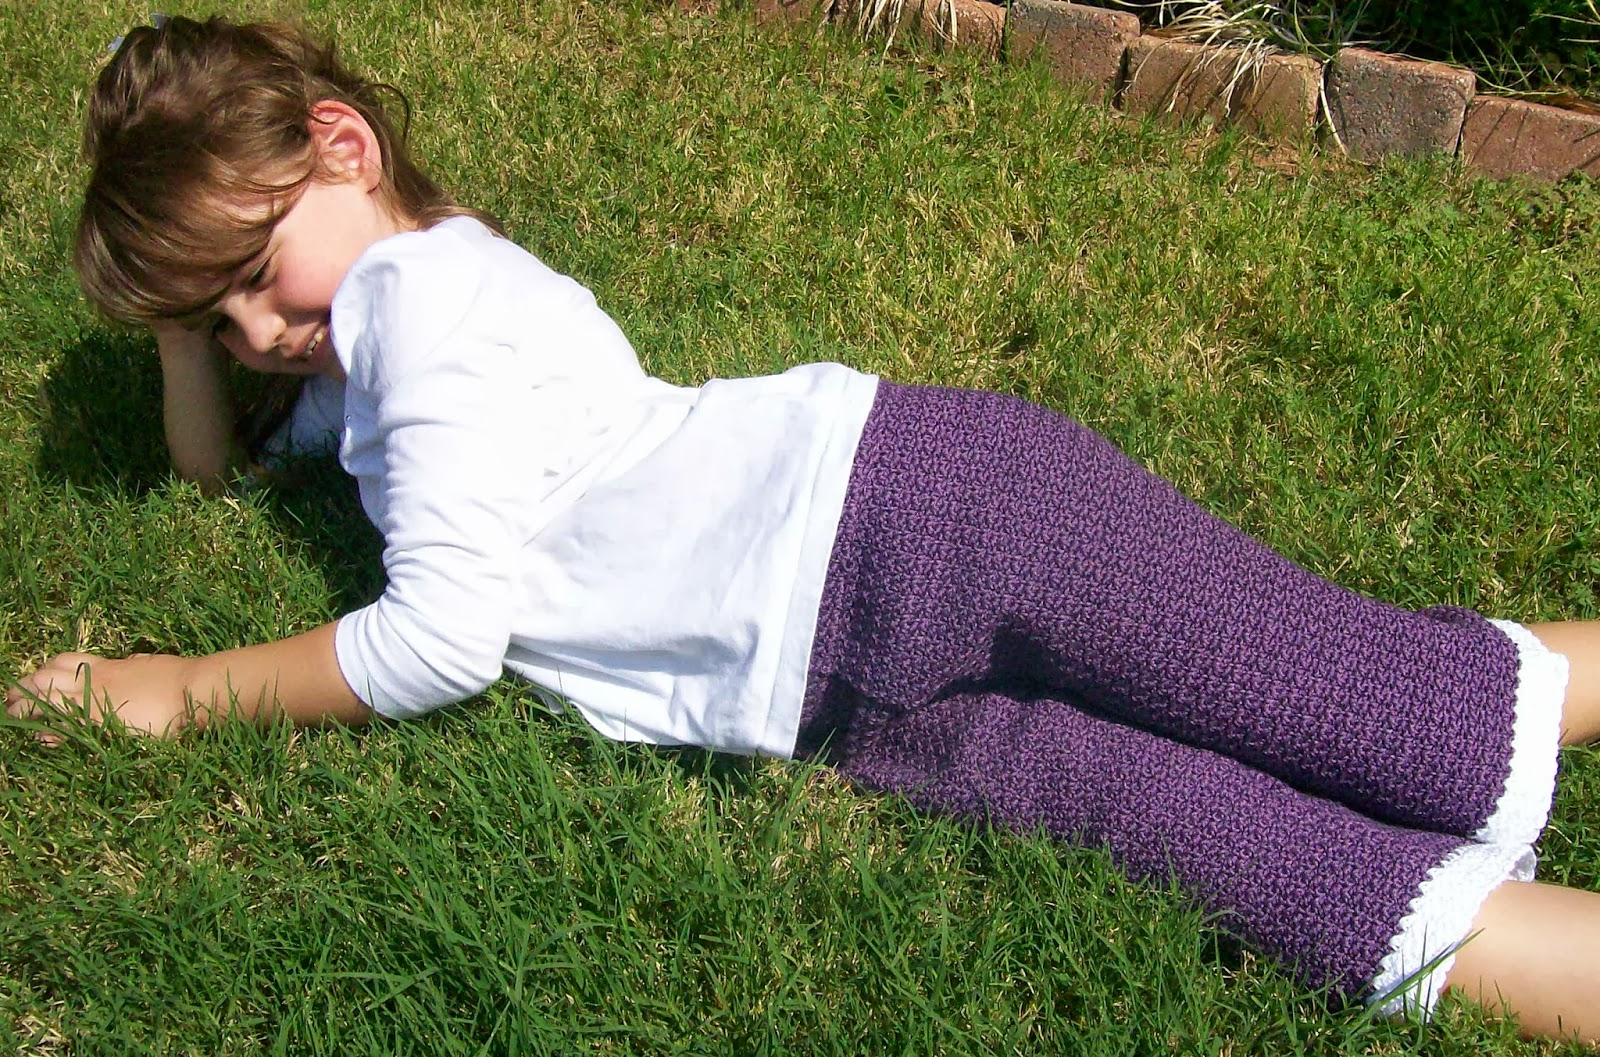 Child laying down in the grass wearing a white shirt and purple crochet capri pants.